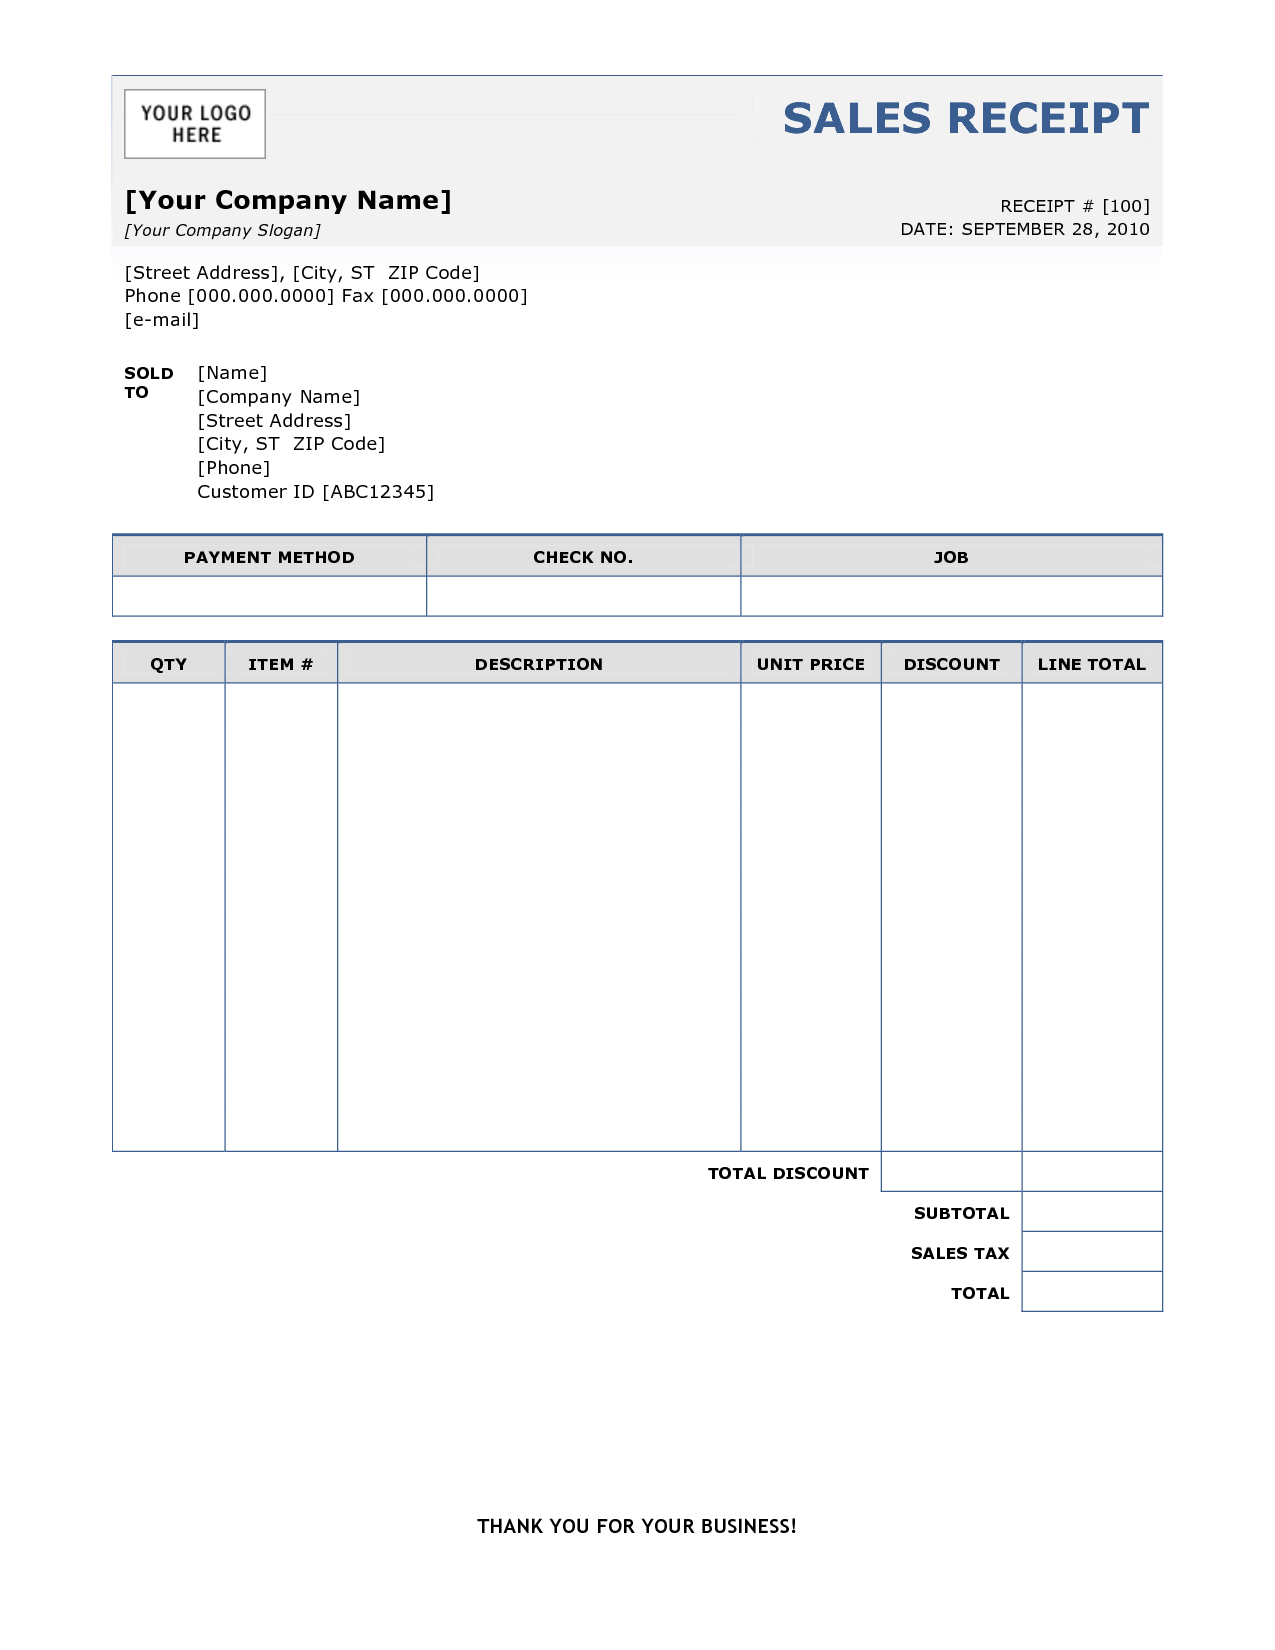 Sales Receipt | Free Sales Receipt Template for Excel